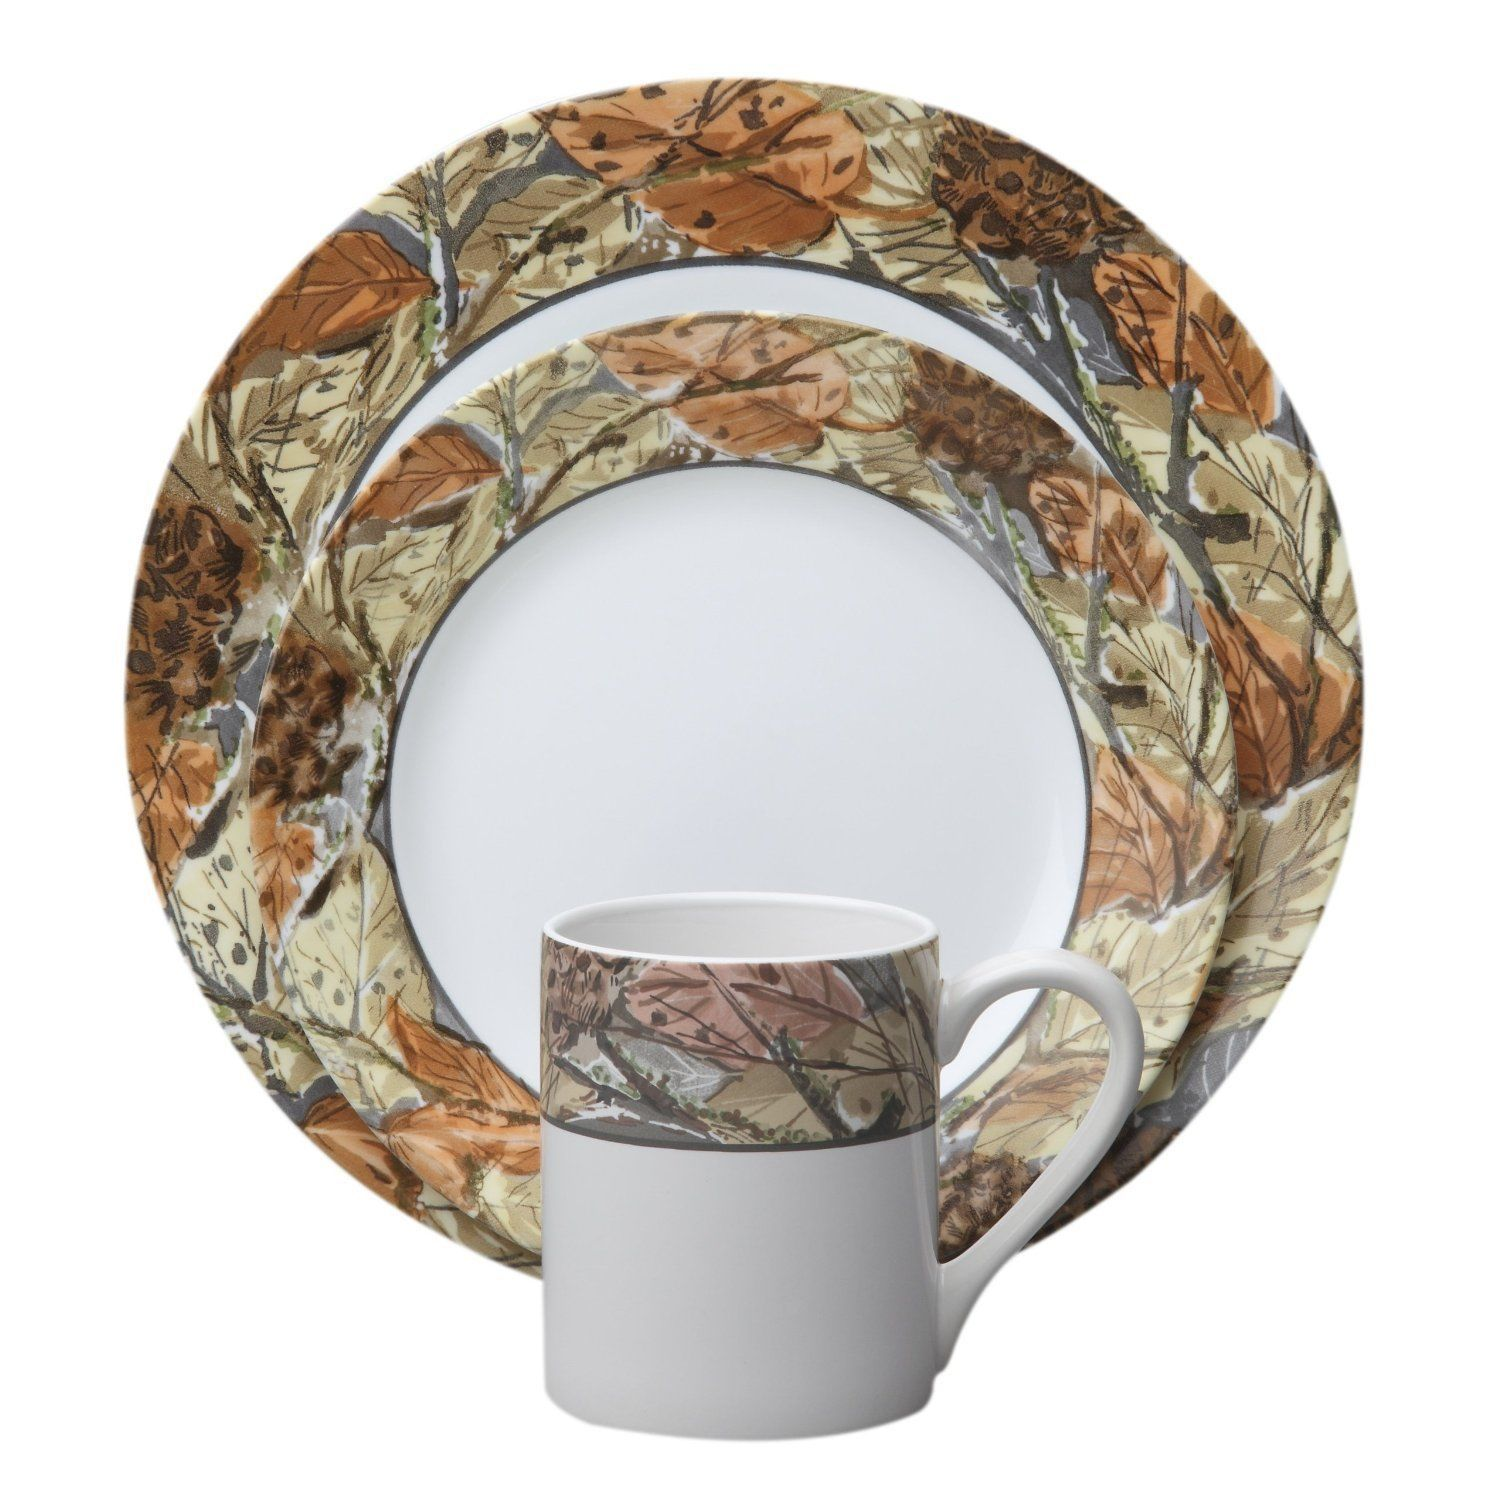 Impressions™ Woodland Leaves Dinnerware Set - the plates and mug bear bands decorated with a blanket of leaves (no raking required).  sc 1 st  Pinterest & Top 10 Dinnerware Sets for Thanksgiving | Dinnerware